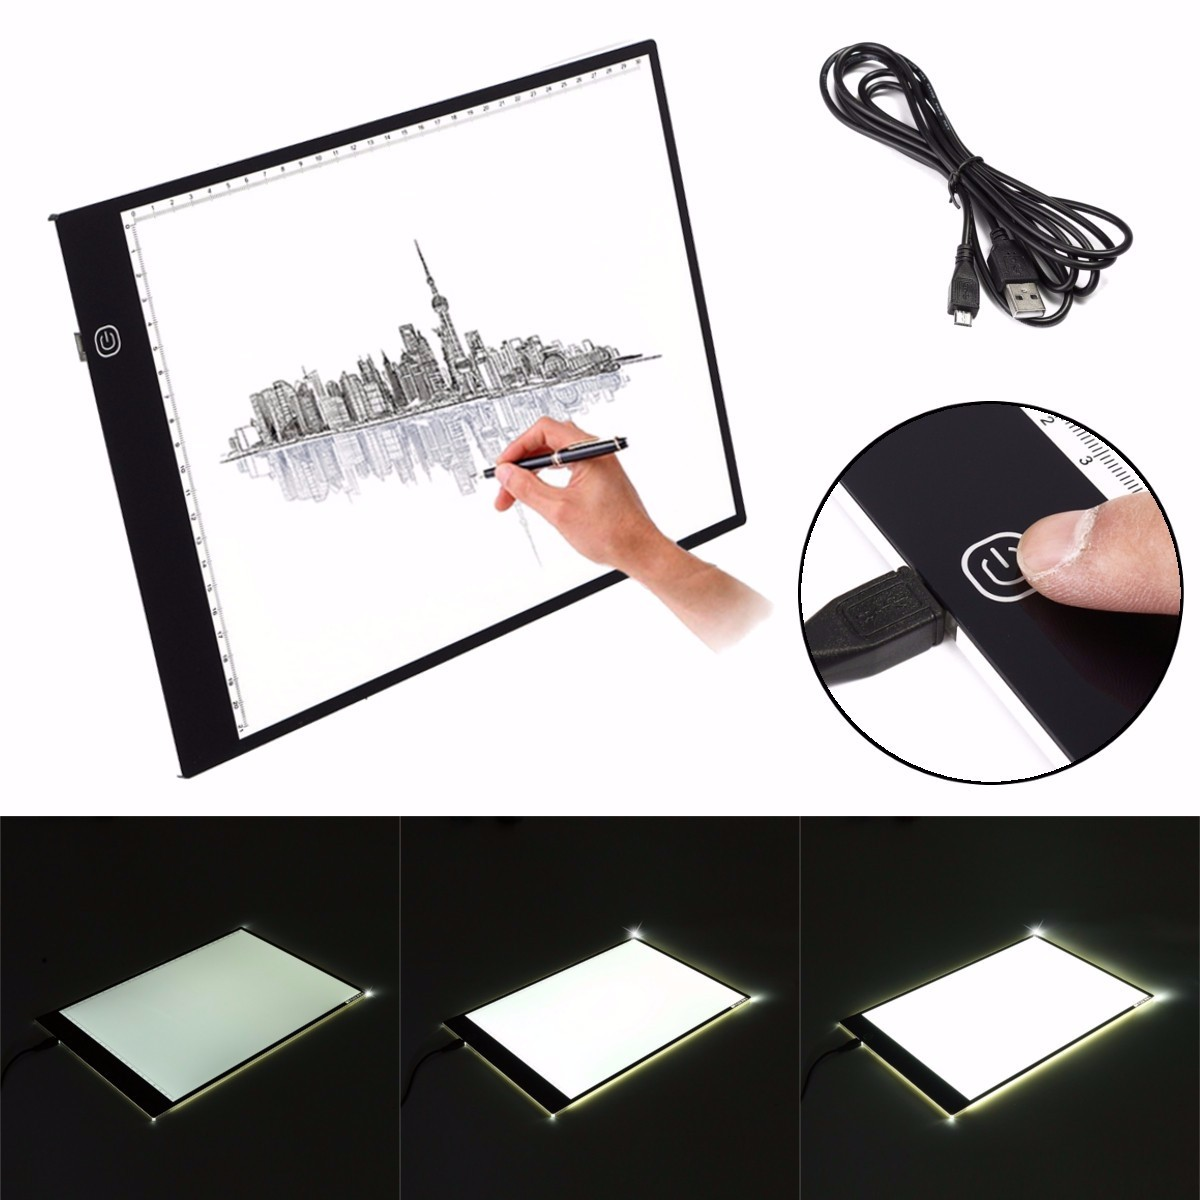 M.Way Ultra Thin A2 A3 LED Copy With USB Cable Adjustable Brightness Drawing Pad Copy board